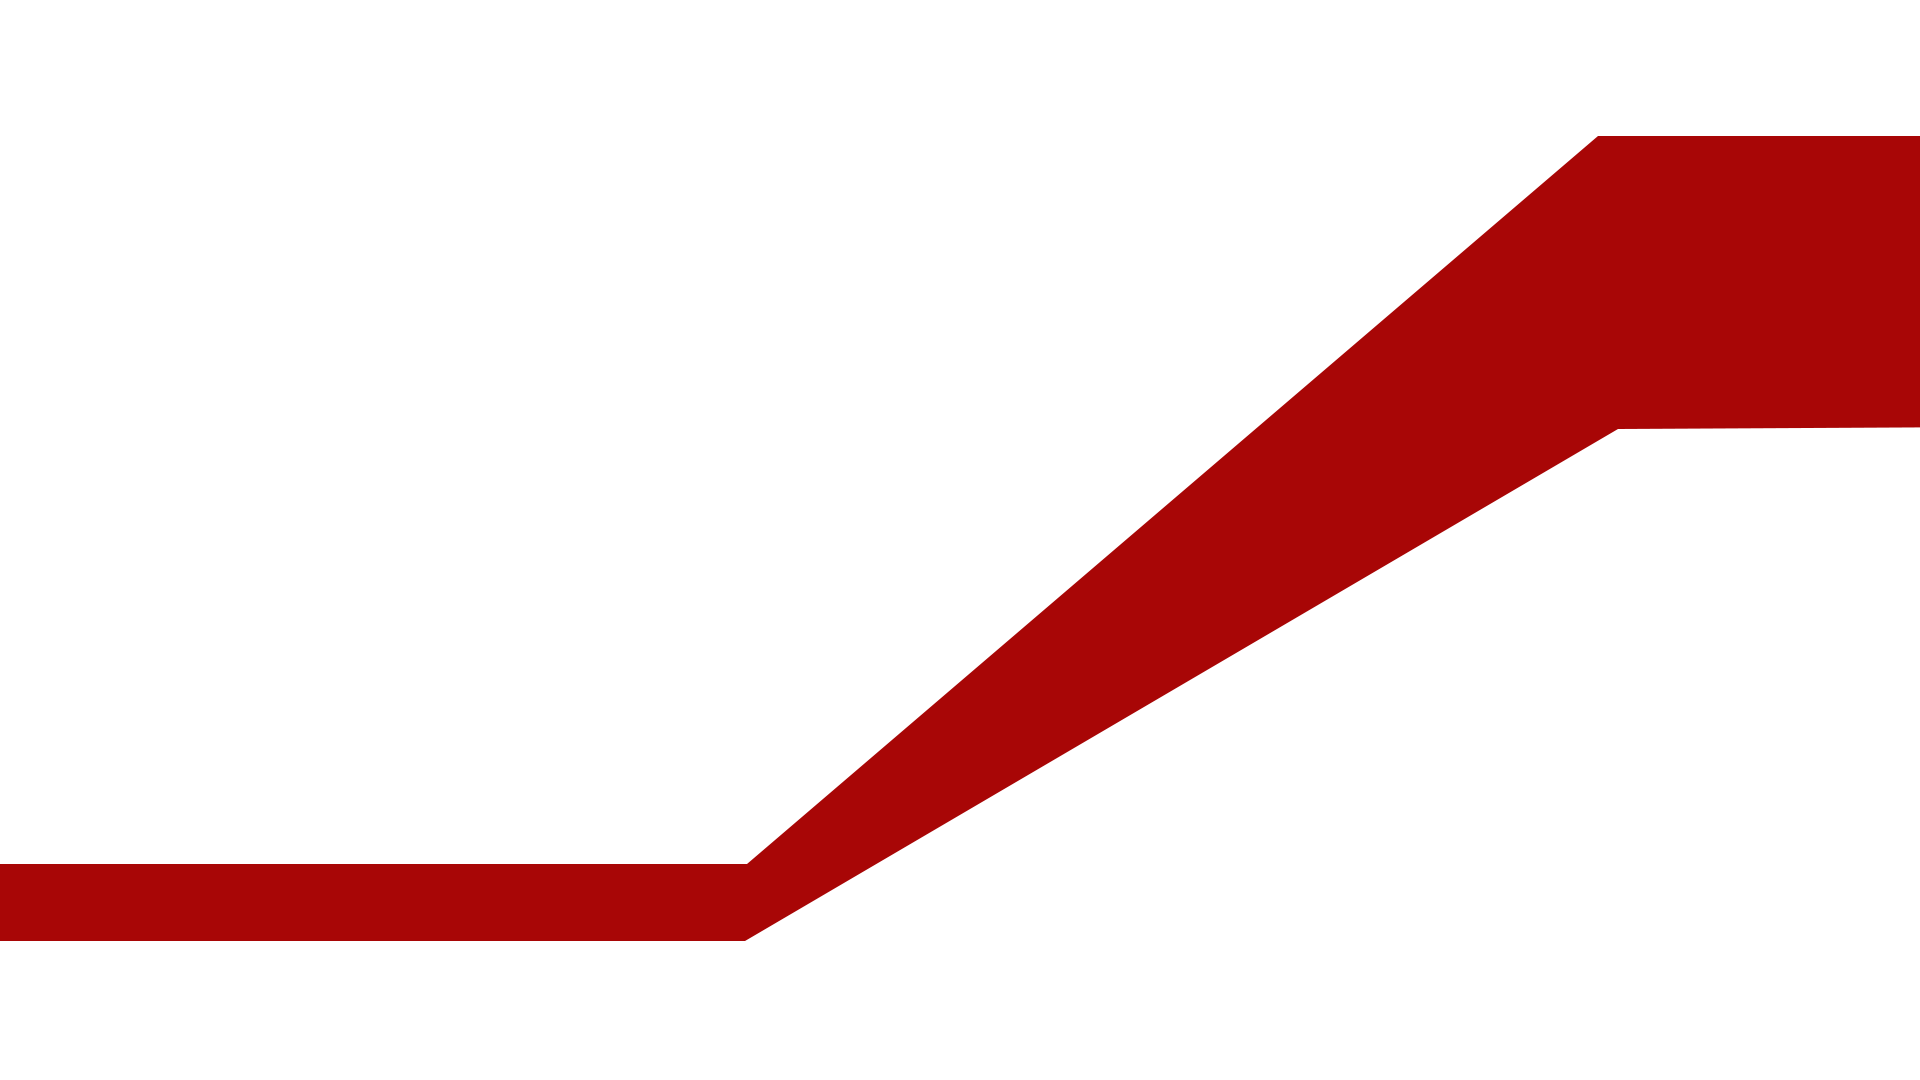 Red line png. Image